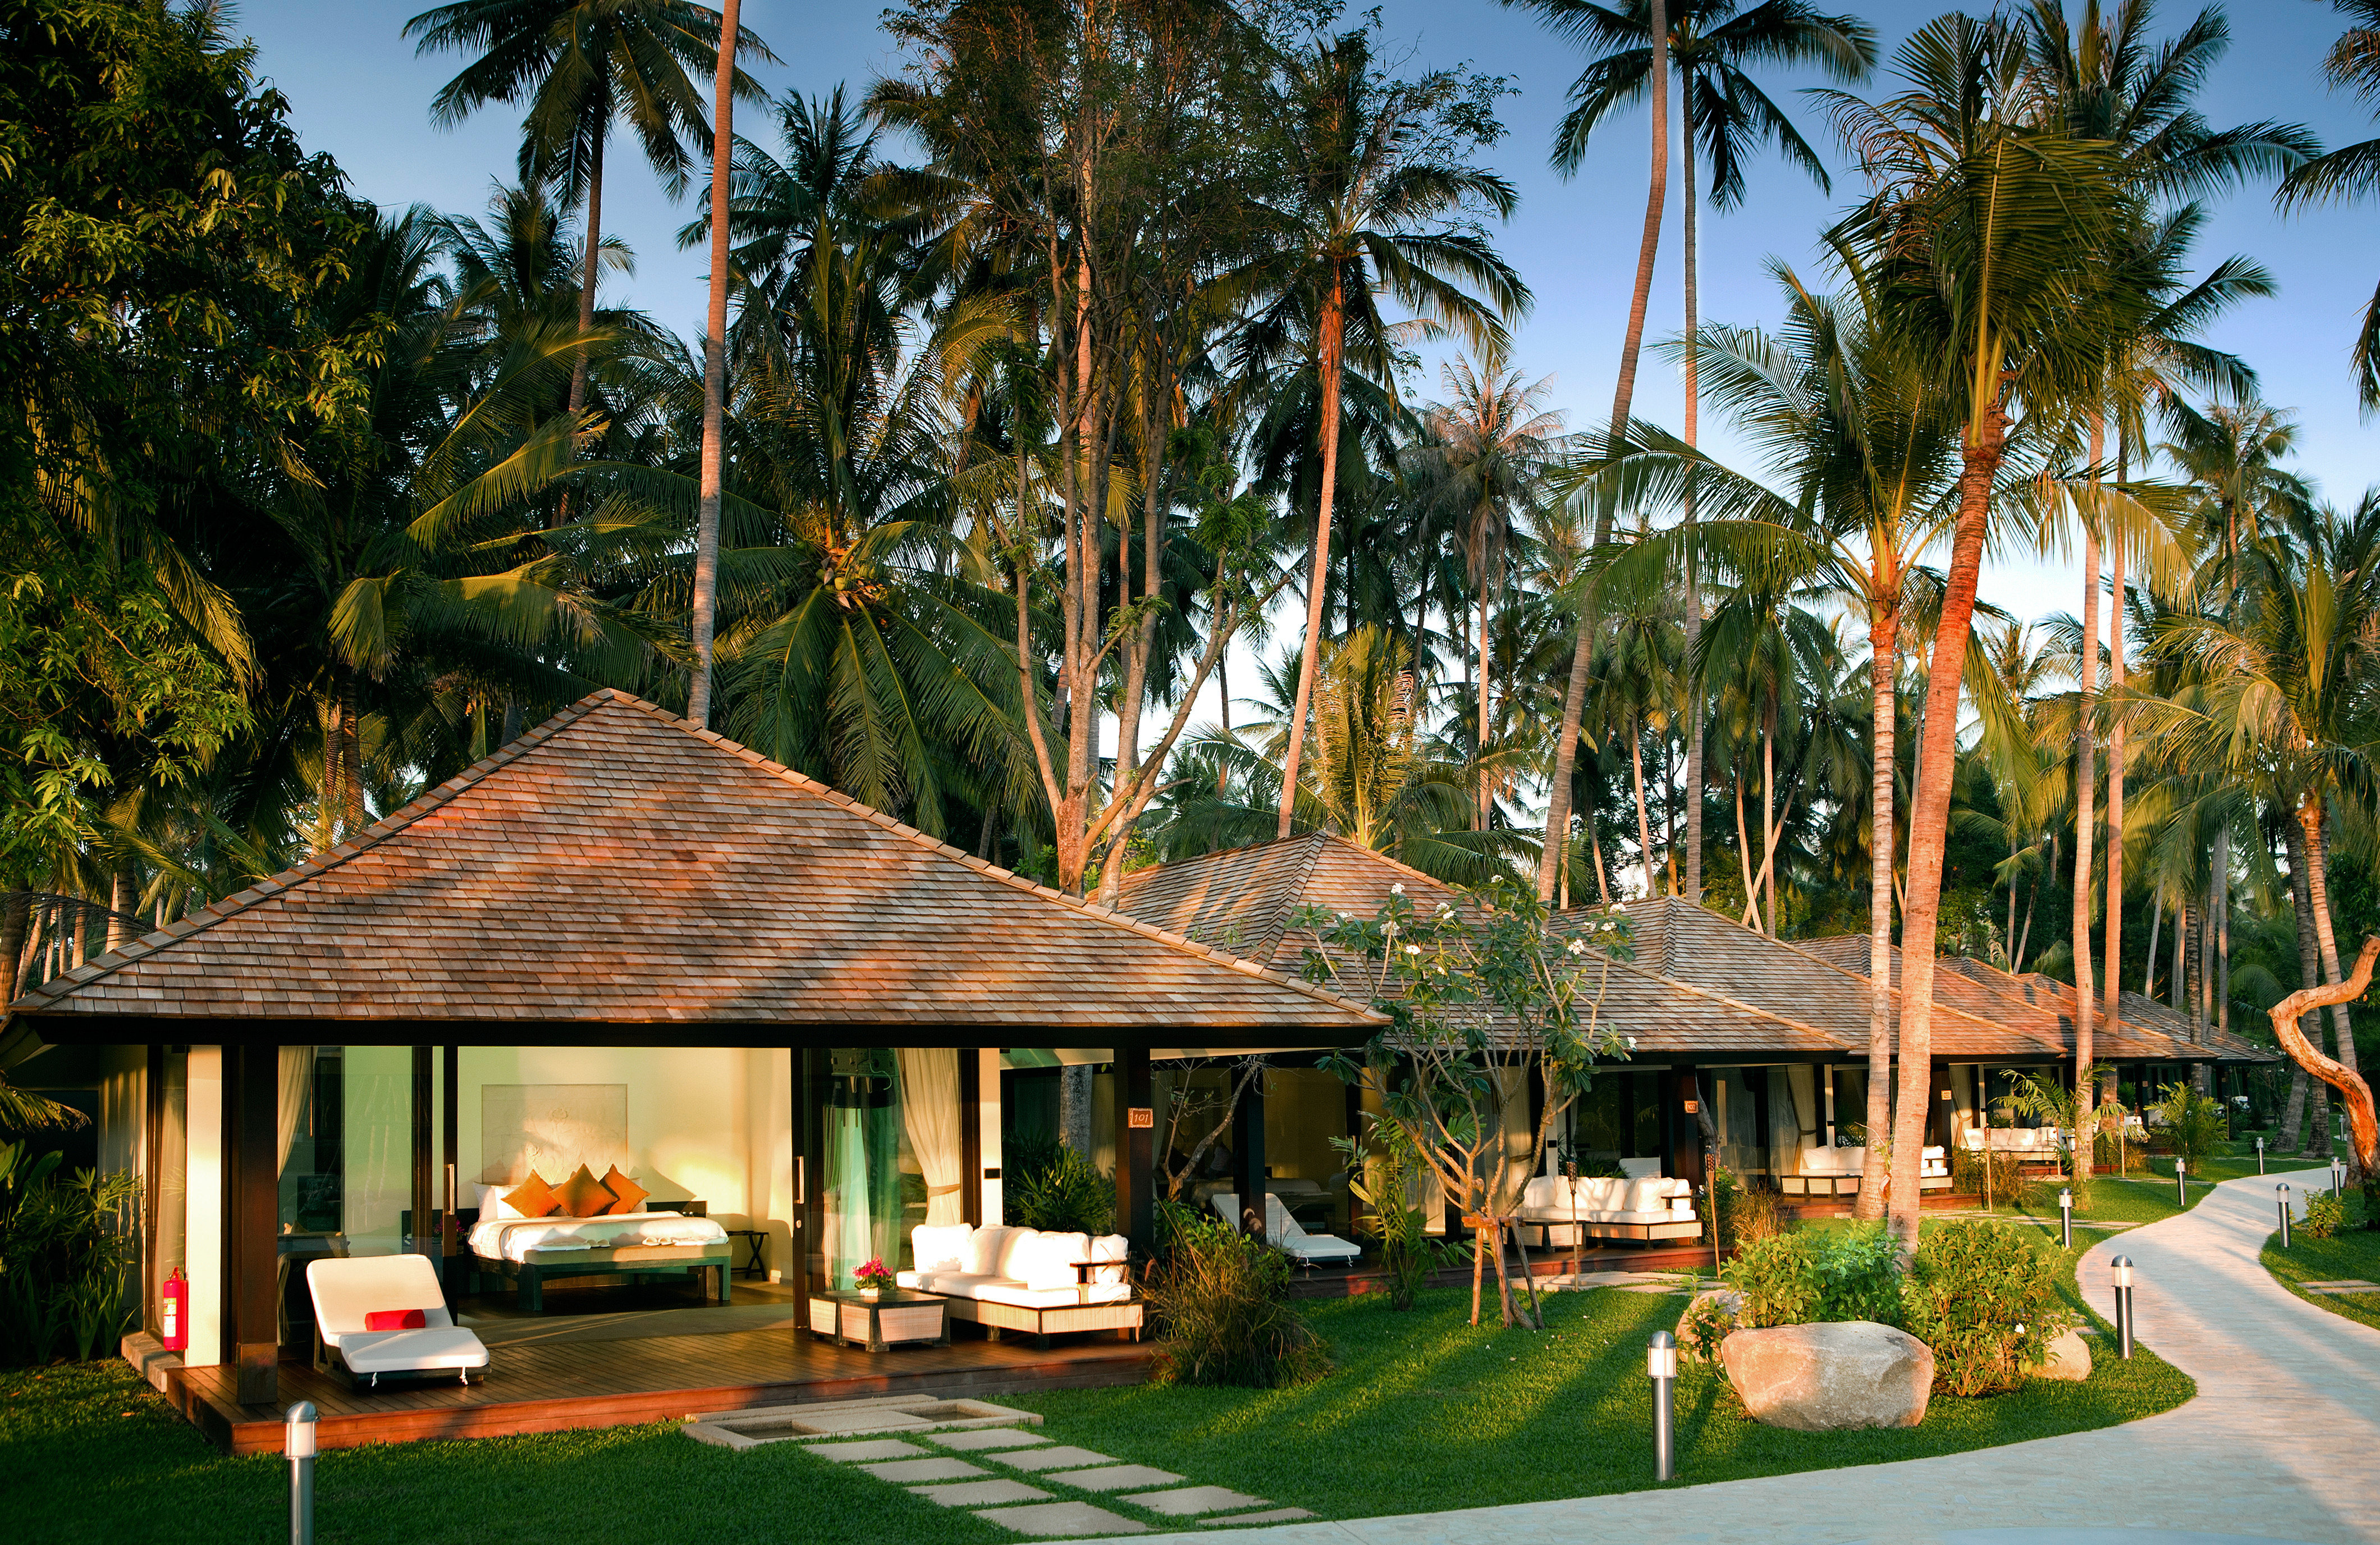 Bedroom Deck Grounds Modern Resort Suite tree grass palm arecales plant home caribbean eco hotel Jungle restaurant tropics swimming pool lawn Garden lined surrounded